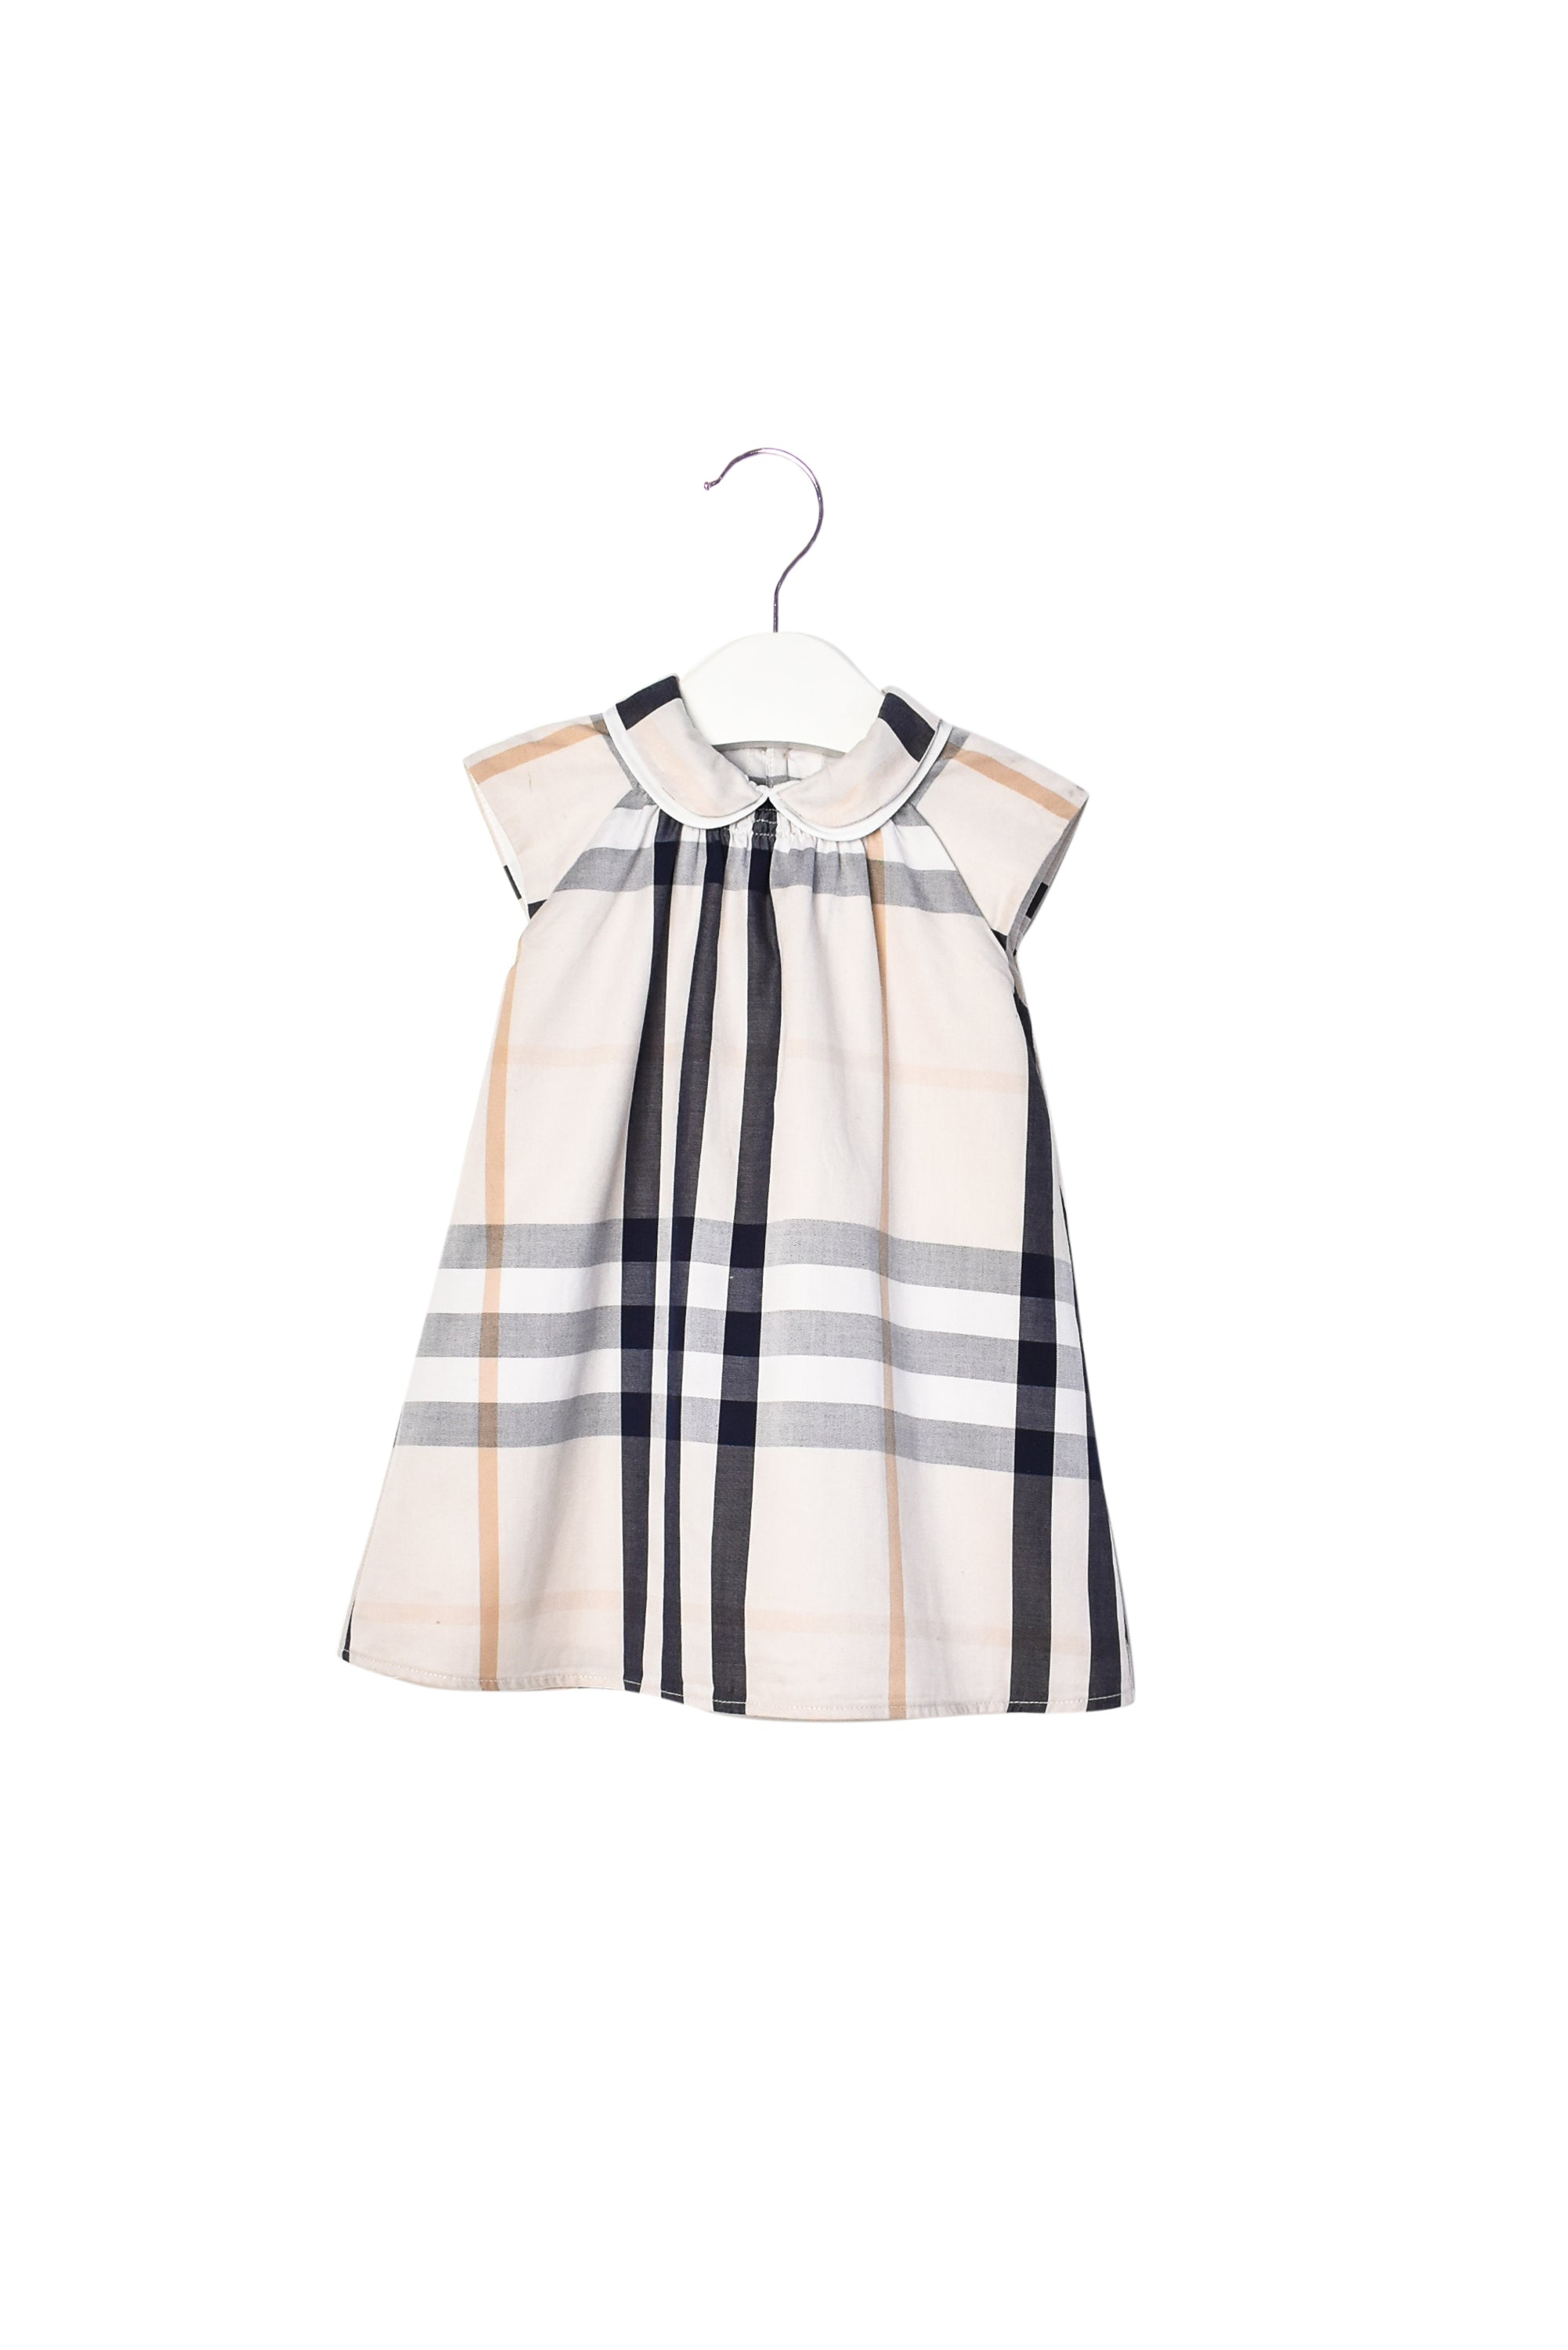 10007687 Burberry Baby ~ Dress 9M at Retykle